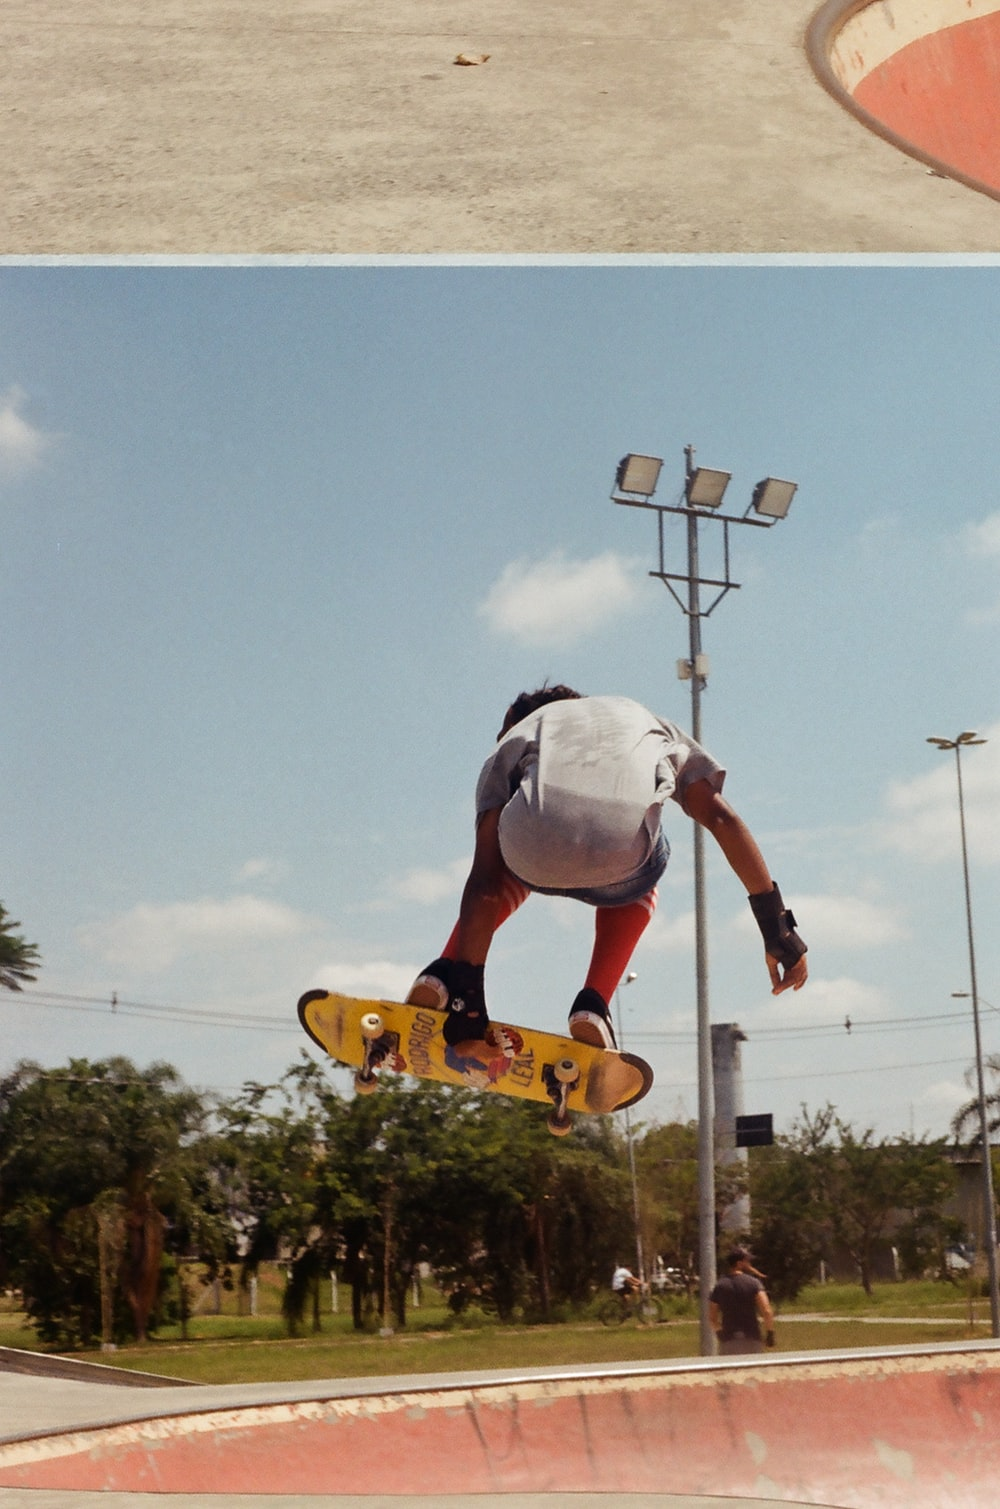 man in white helmet riding orange and white skateboard during daytime